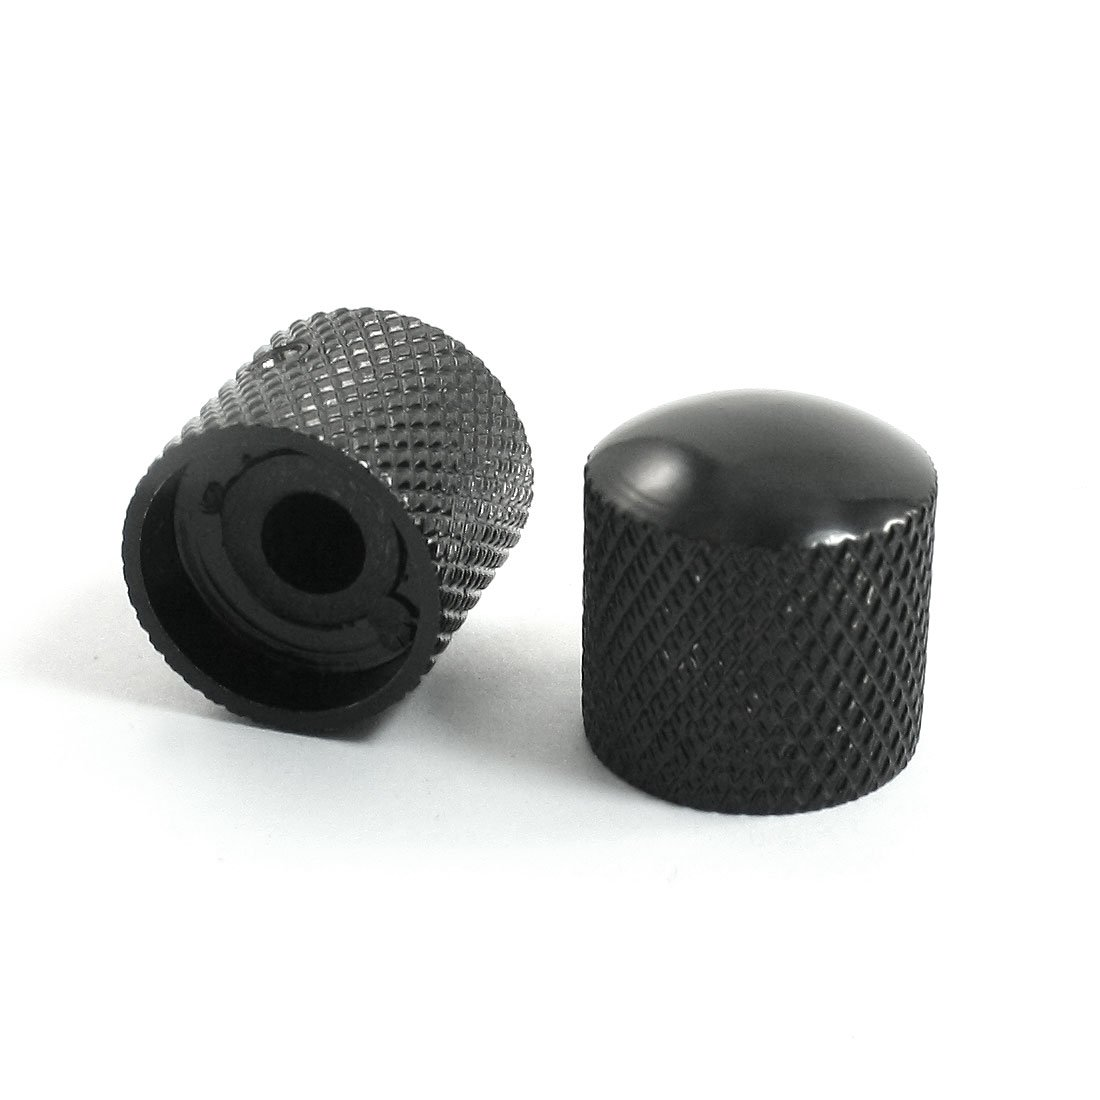 uxcell2x Metal Dome Tone Guitar Bass Control Knob Wrench for Fender Tele a14012100ux0246